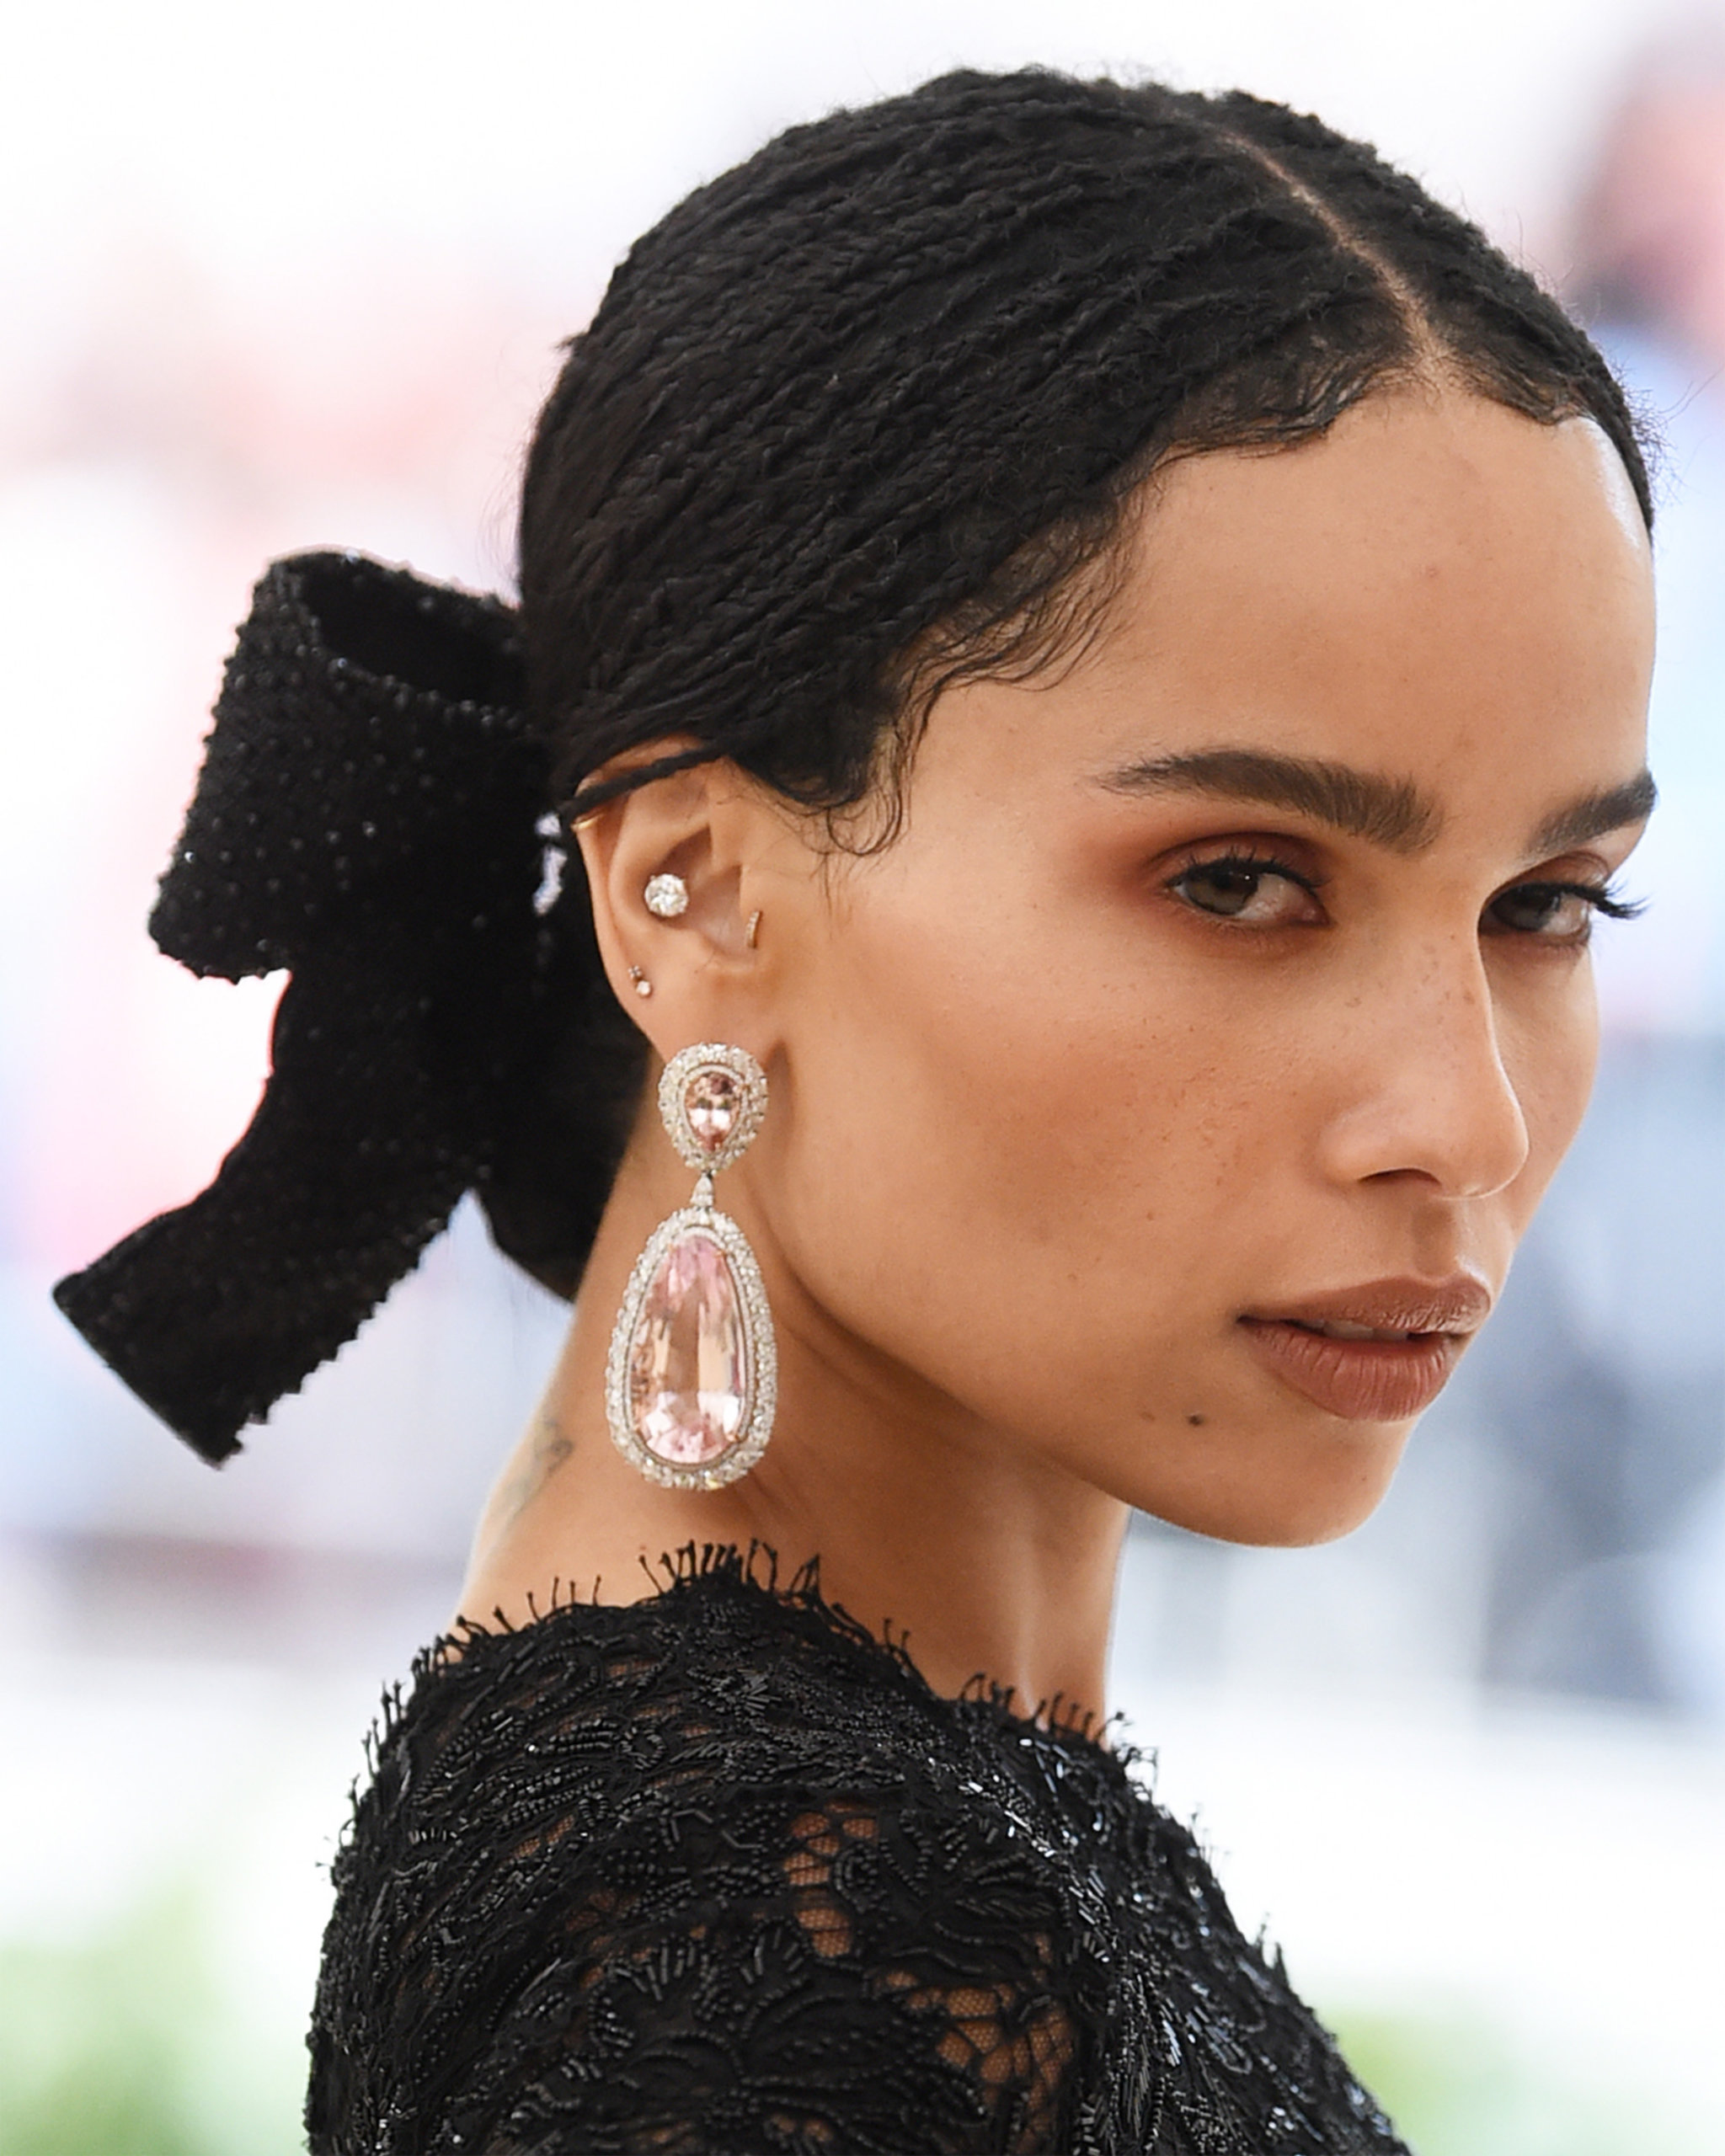 Teardrop diamond earrings with pink morganite diamond and diamond studs worn by Zoë Kravitz at the 2018 Met Gala